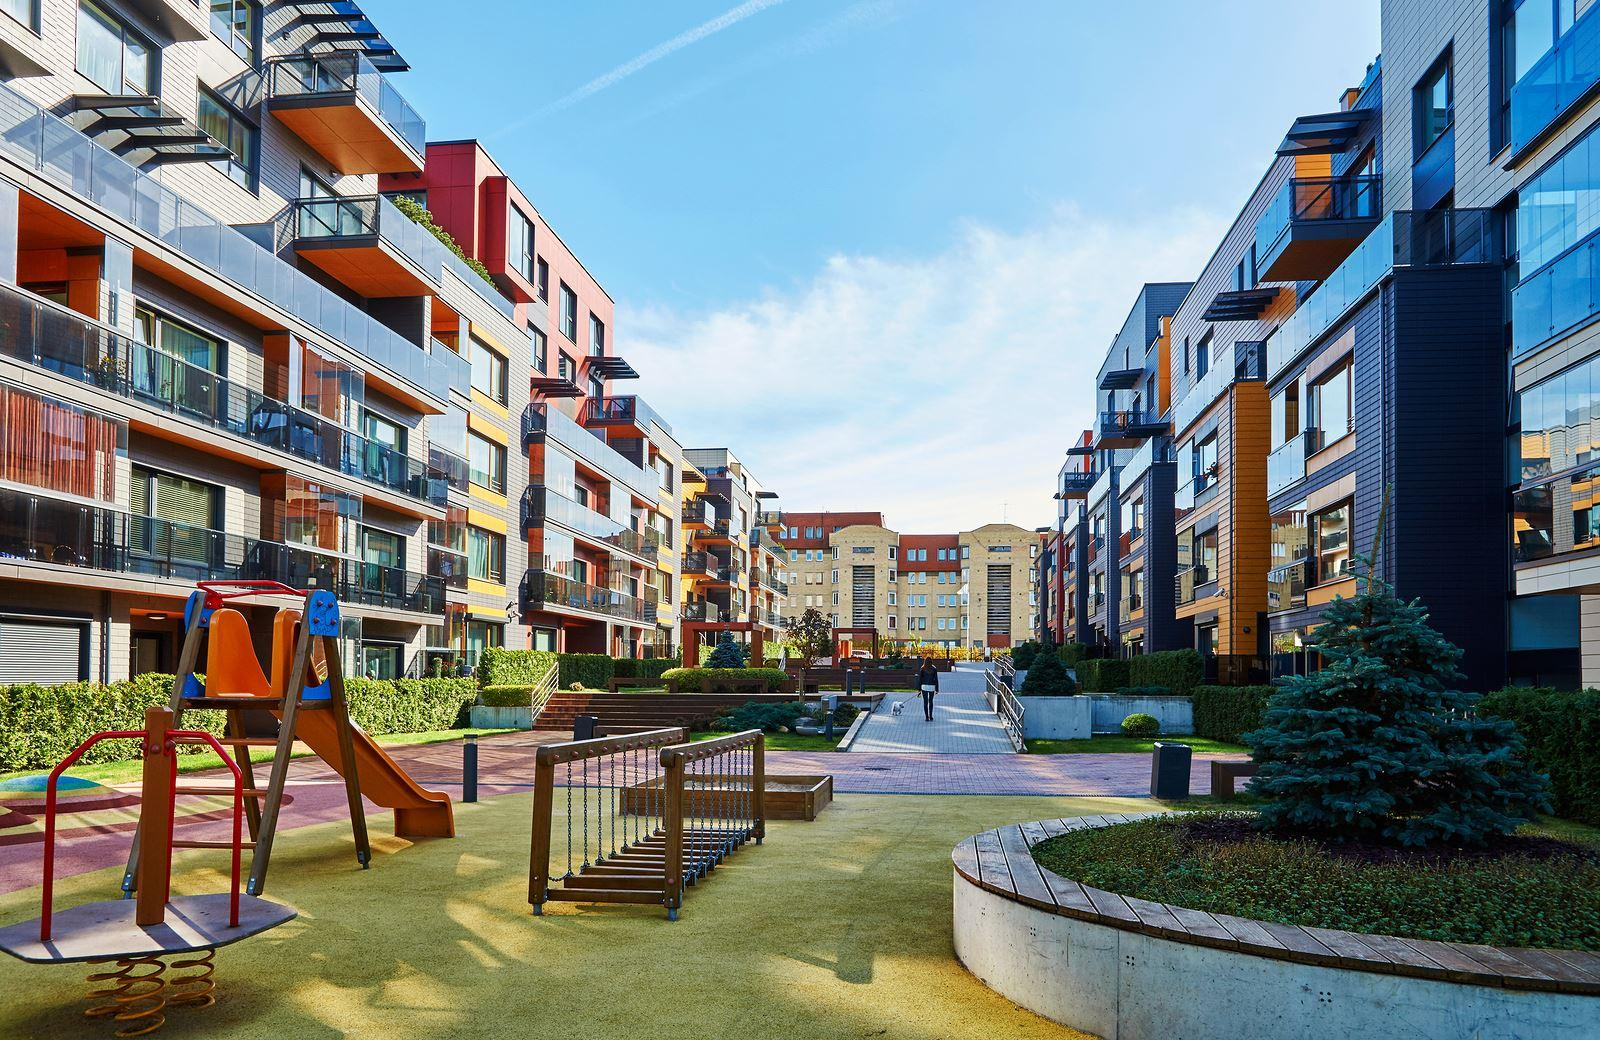 6 Neighborhood Amenities for a Successful Residential Investment Property |  Mashvisor